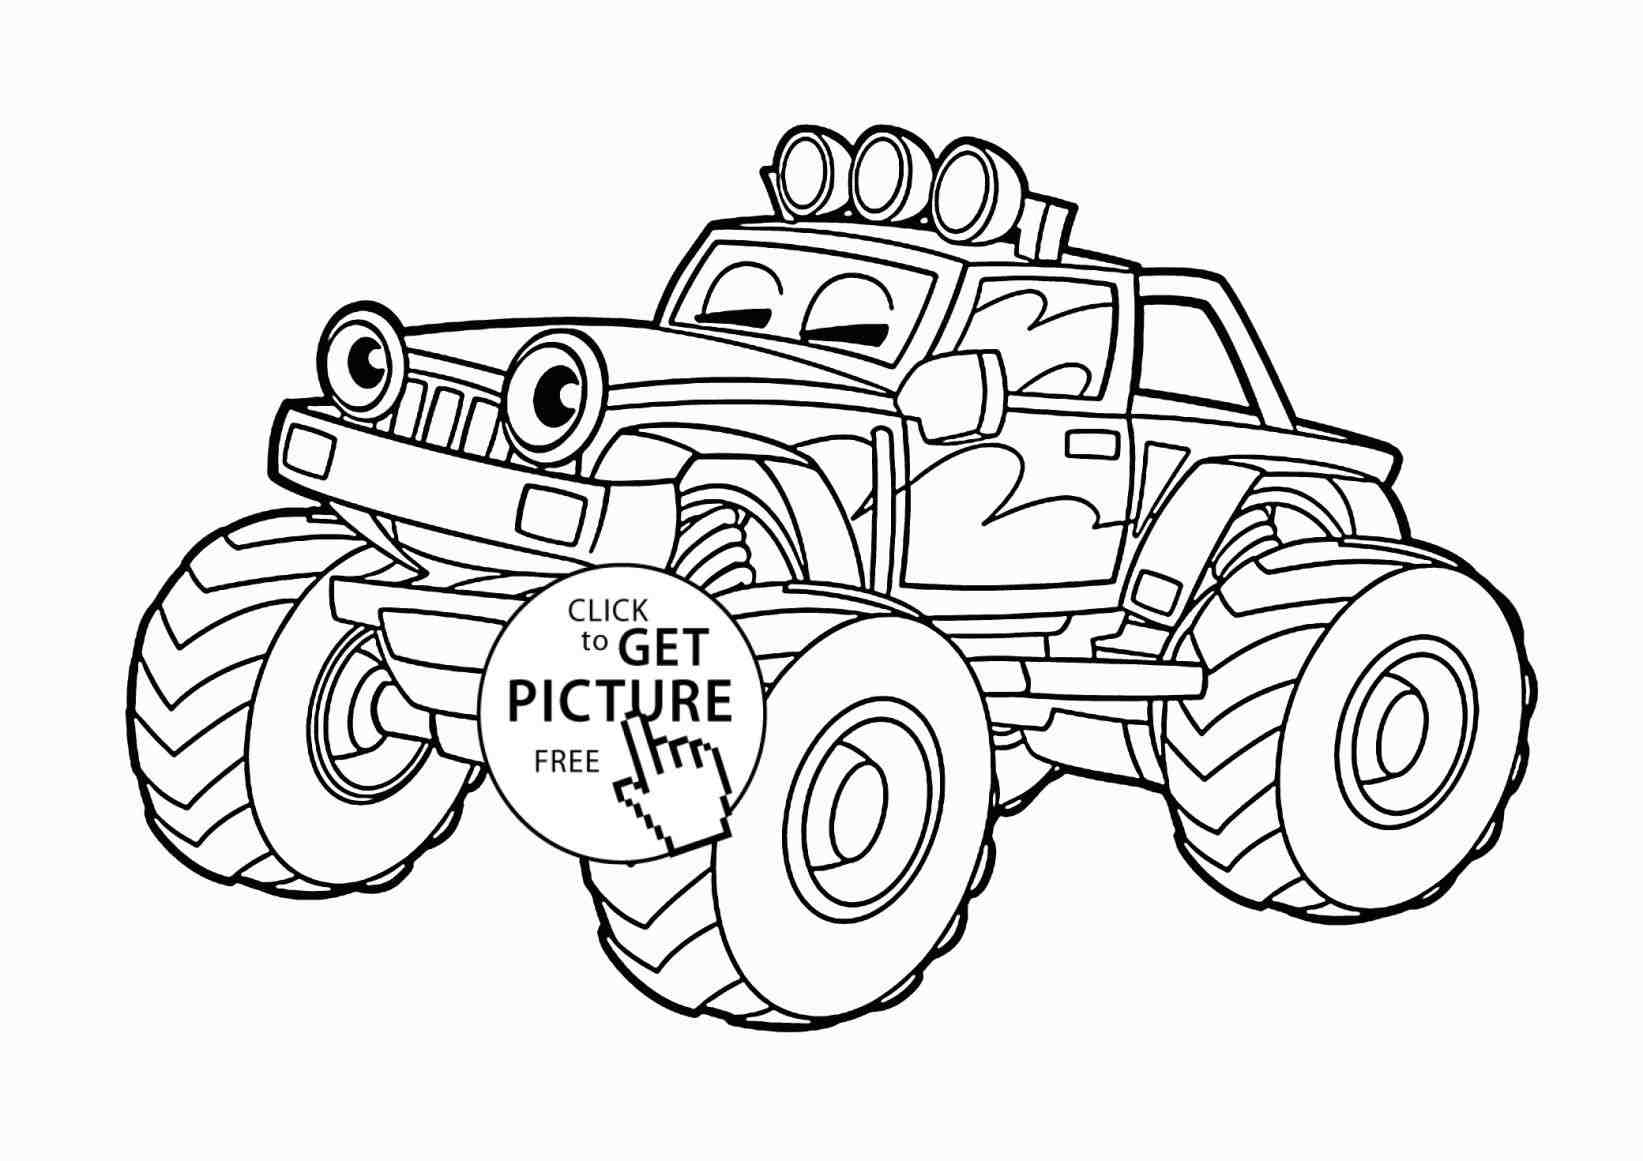 lifted ford truck coloring pages lifted truck coloring pages at getcoloringscom free lifted truck ford coloring pages